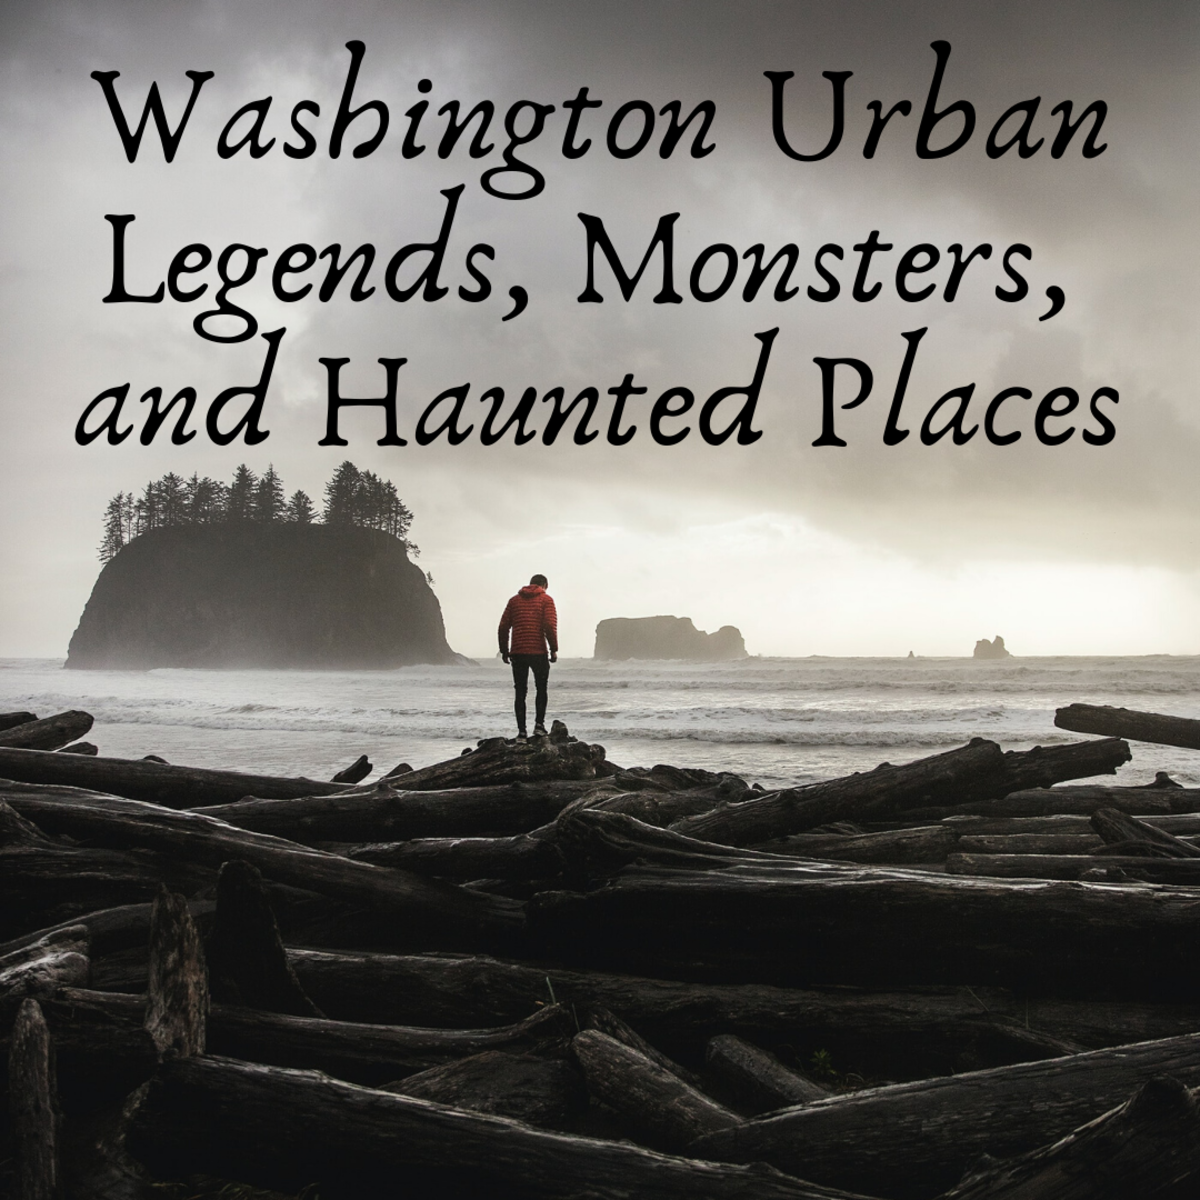 Read on to learn about urban legends, monsters, and haunted places in Washington.